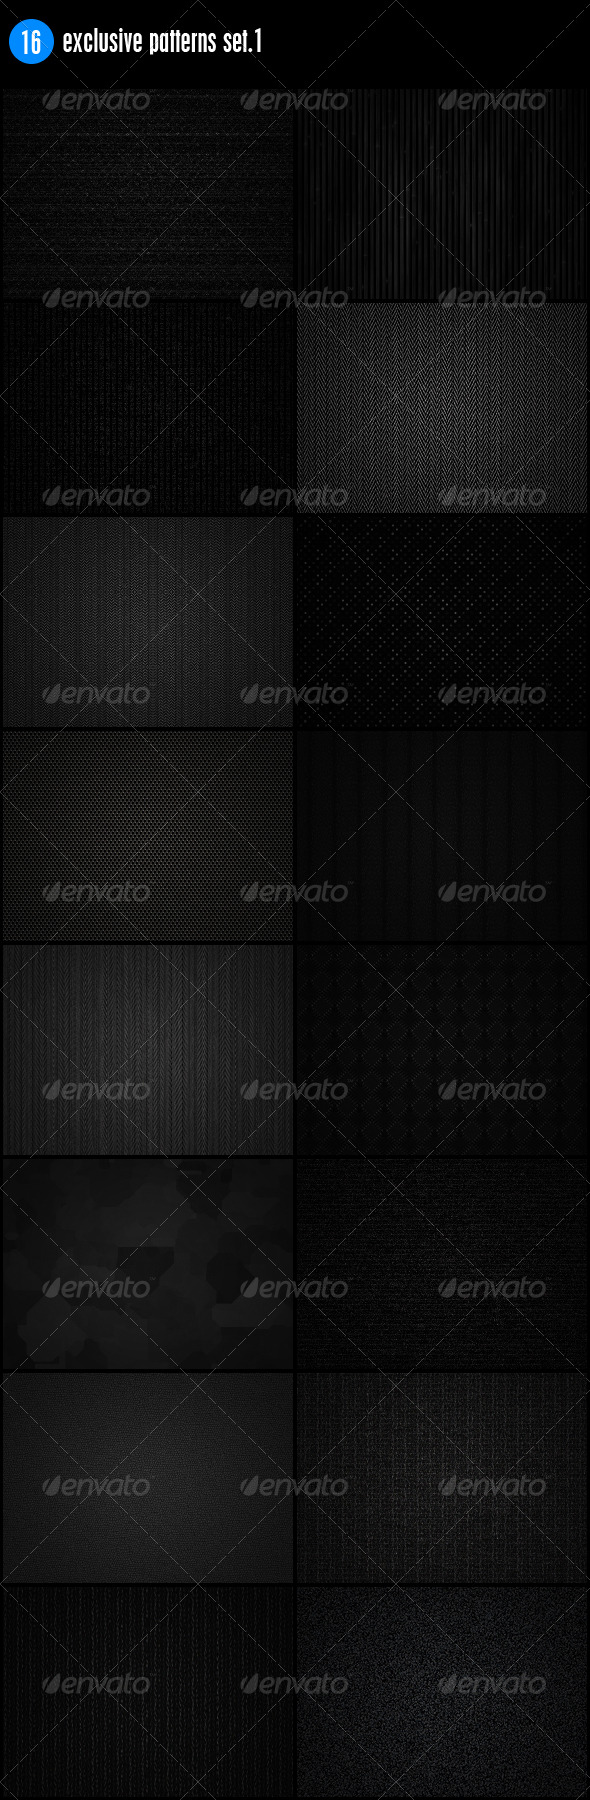 GraphicRiver 16 Exclusive Patterns Set.2 241083